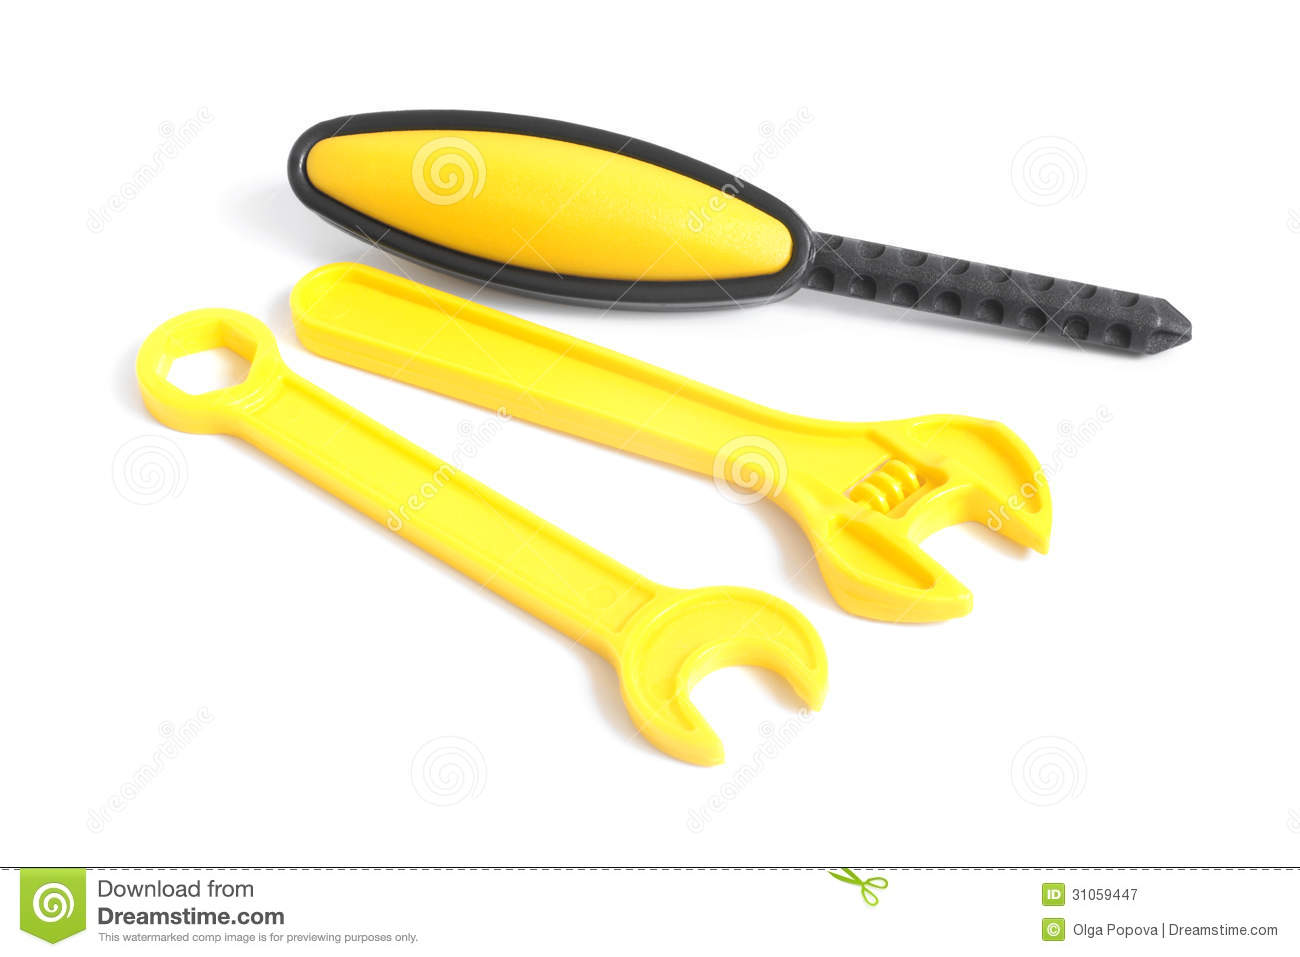 Plastic Toy Tools : Assorted plastic toy tools royalty free stock photography